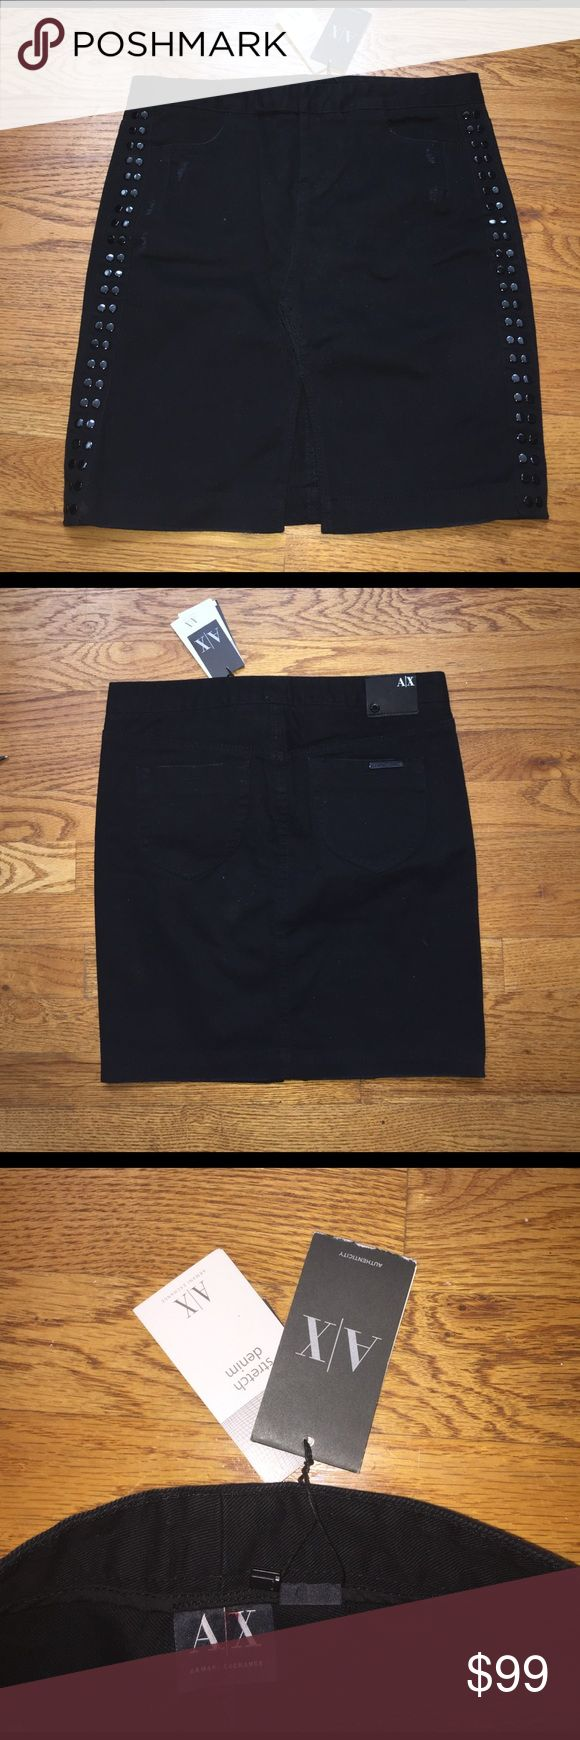 Armani Exchange A/X Black Distressed Skirt 4 NWT Brand with tags!  Comes with COA.  Split in the front and distressed marks on the side.  Sides of skirt also have button studs.  Pocket label on the back.  Cute Witt a pair of heels. A/X Armani Exchange Skirts Midi